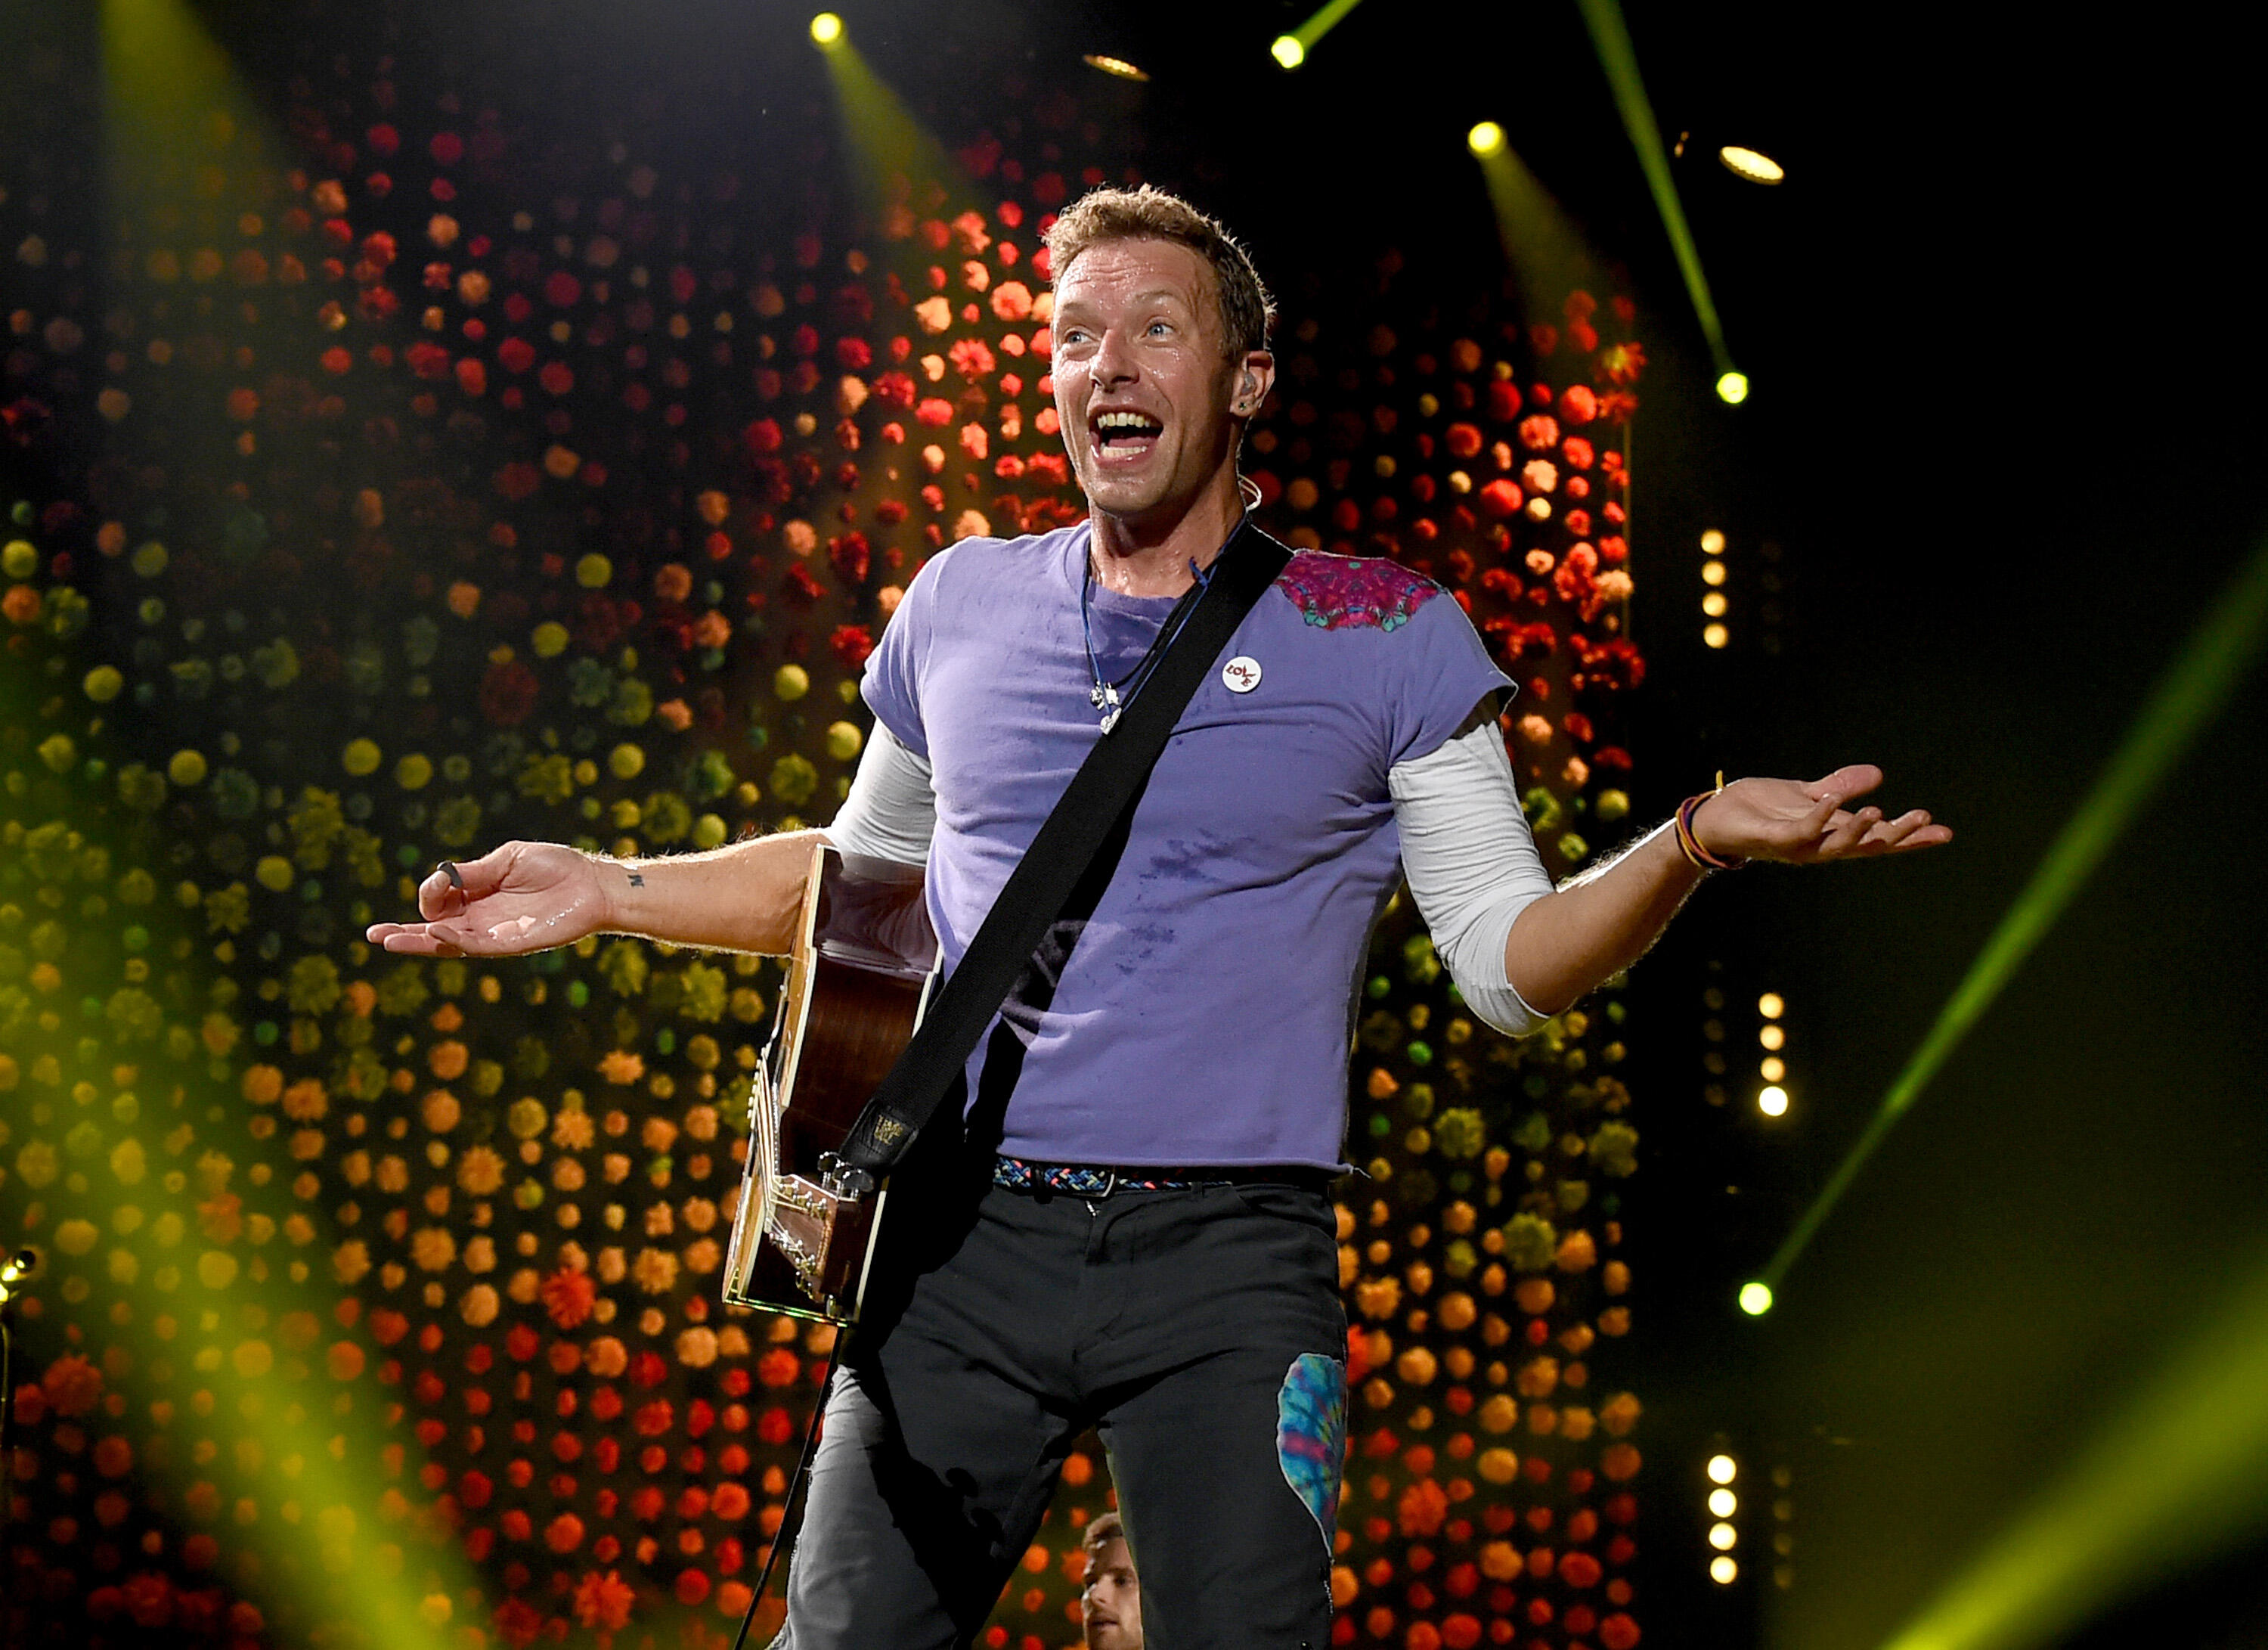 Coldplay Album Release Date Revealed?